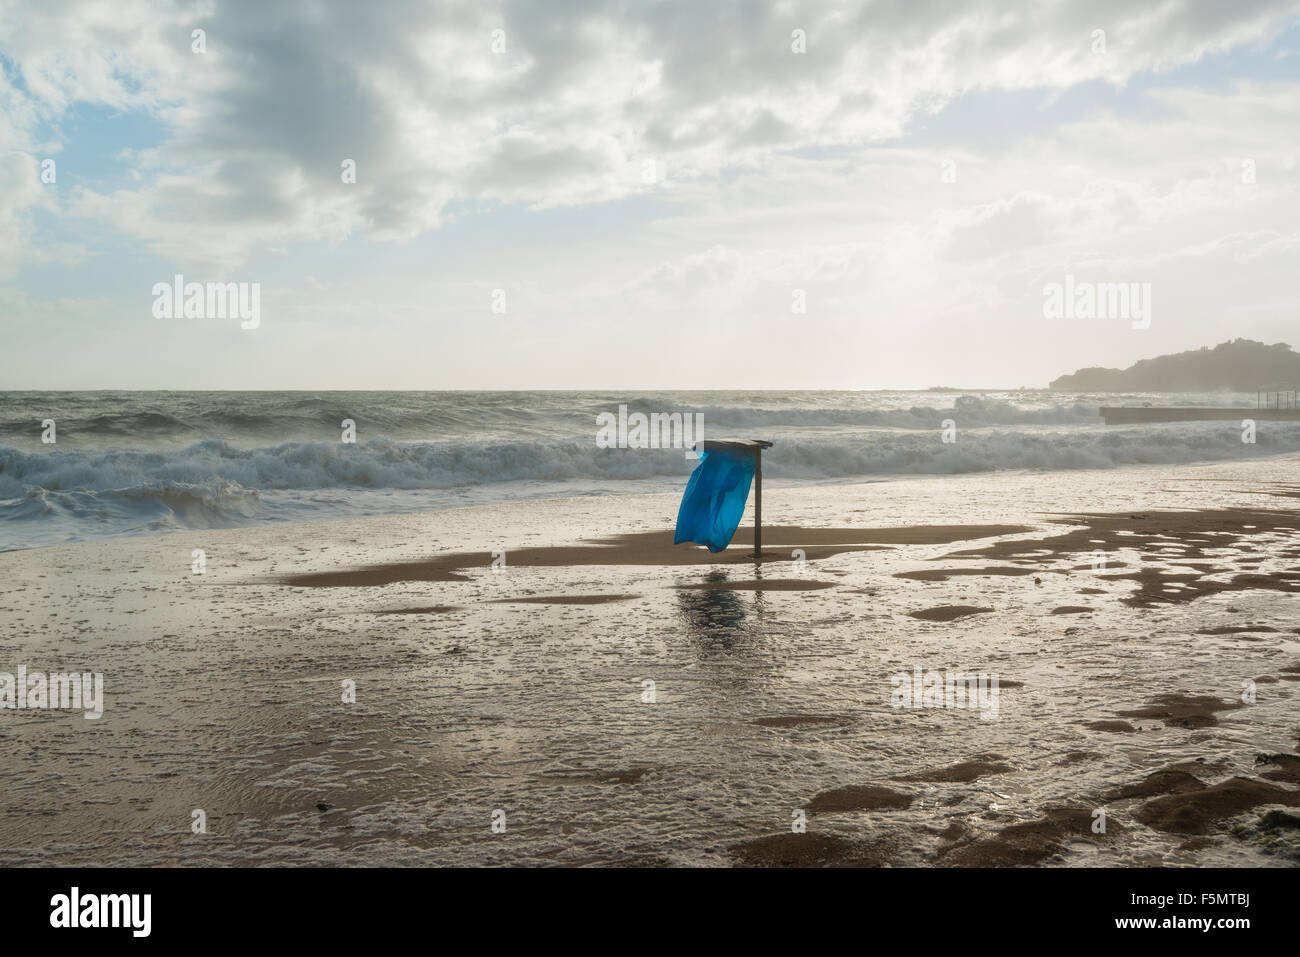 Trash can on the beach - Stock Image